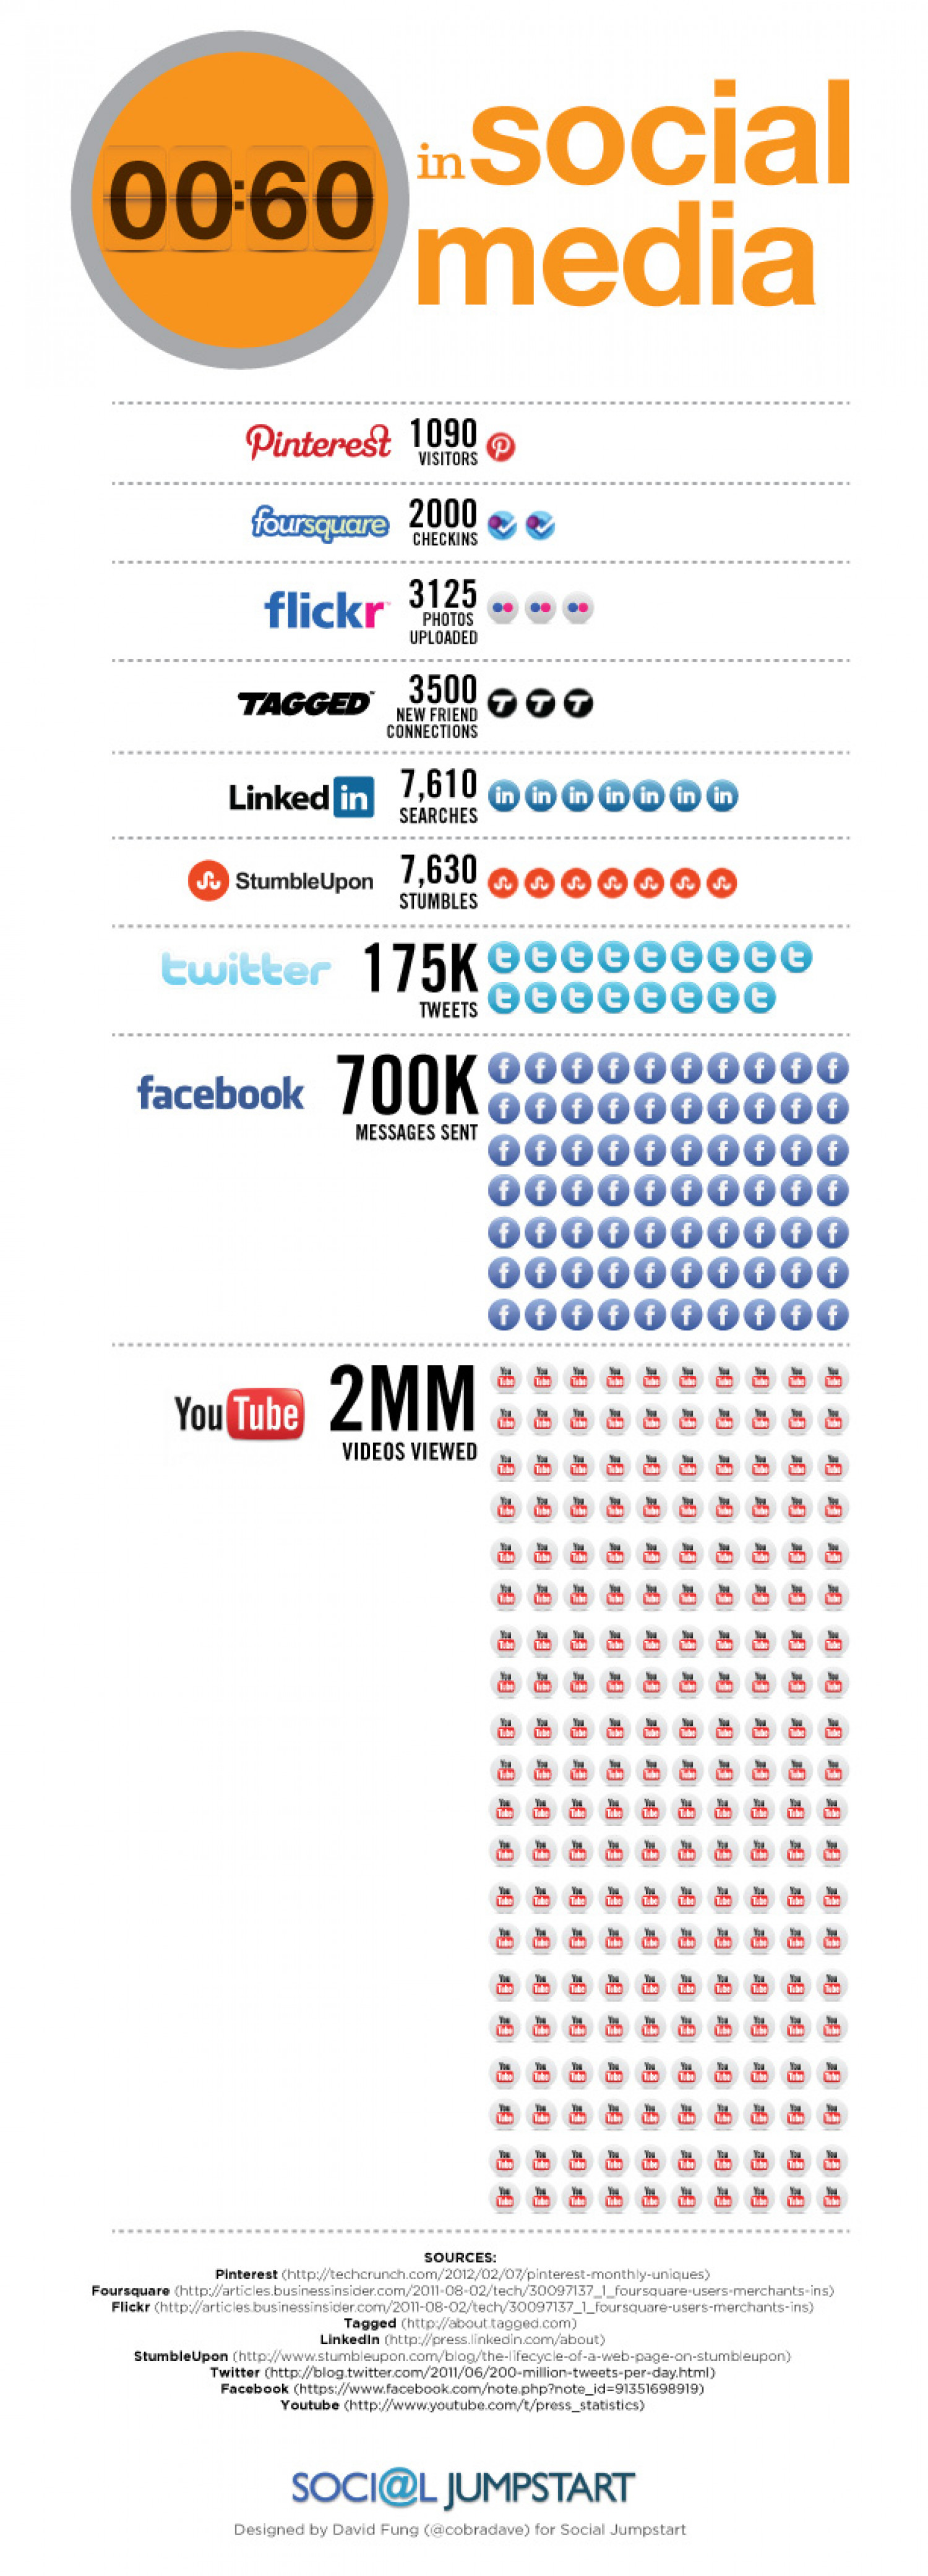 60 Seconds in Social Media Infographic